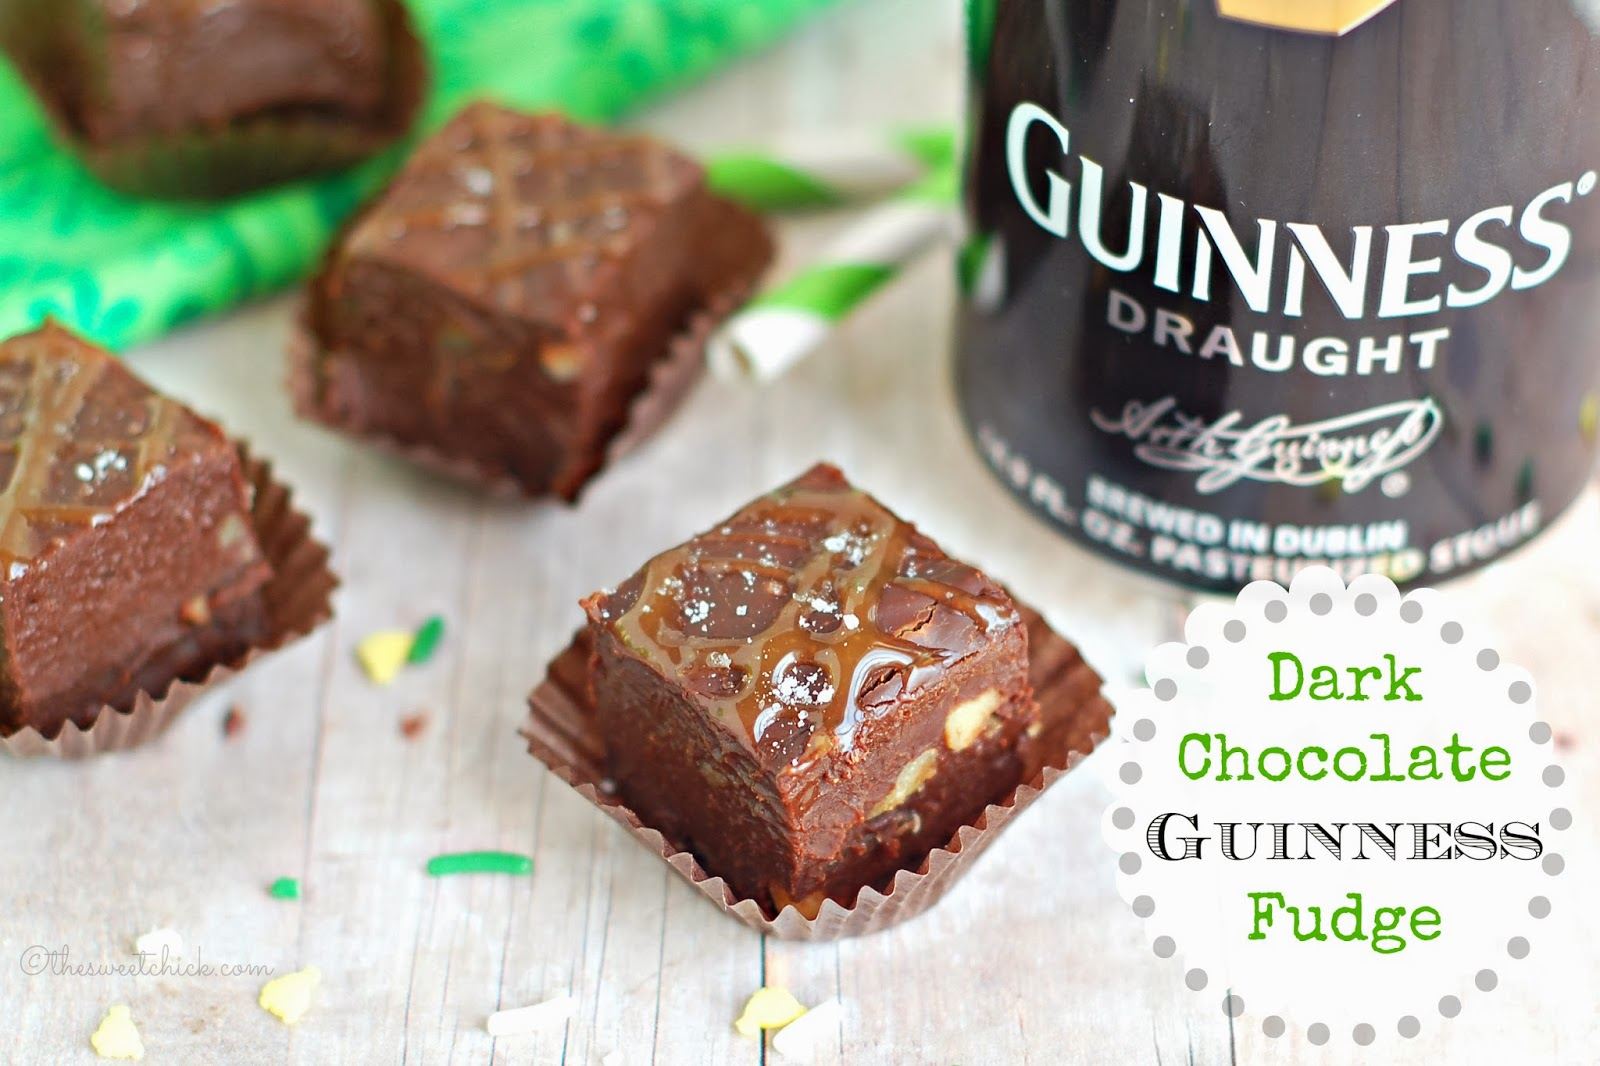 Dark Chocolate Guinness Fudge by The Sweet Chick